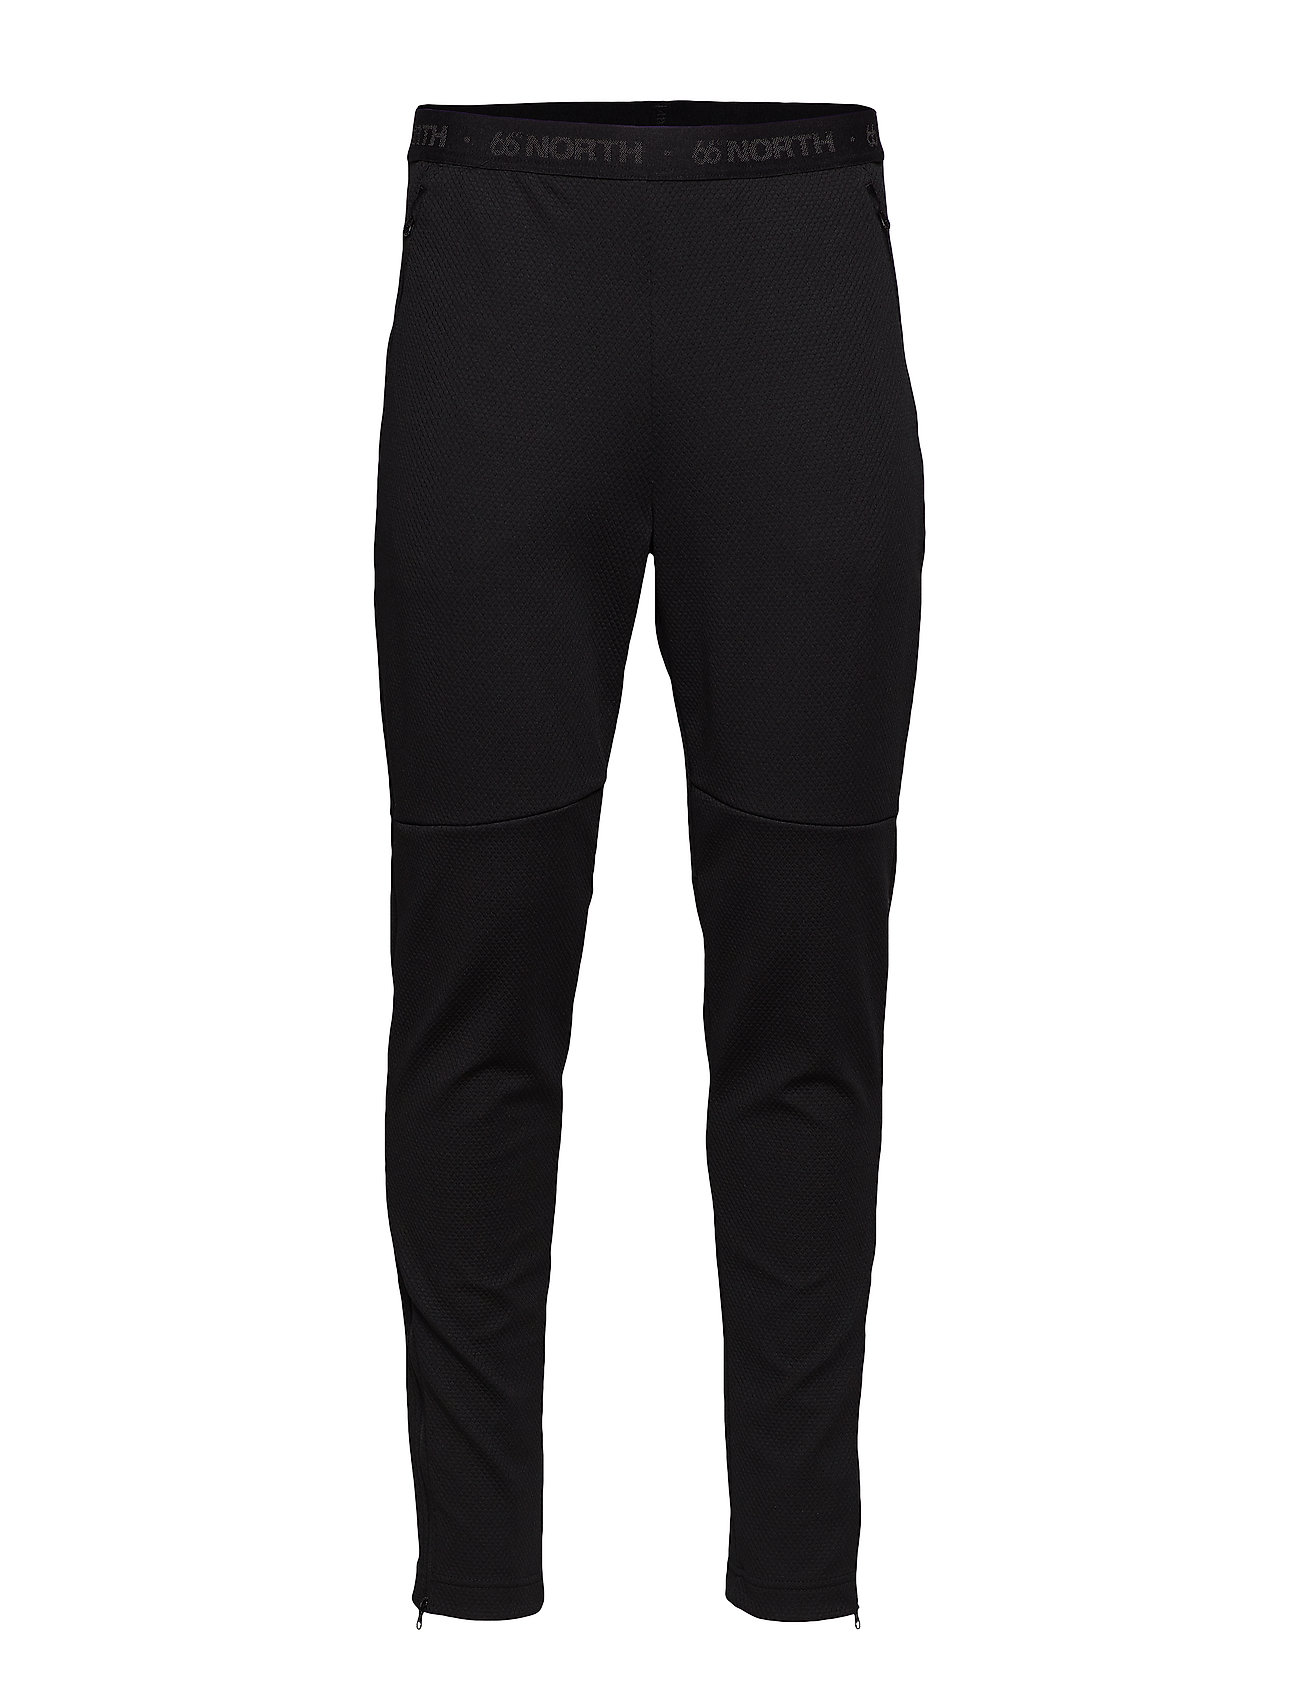 66 North Klambratun Fleece Pants - BLACK